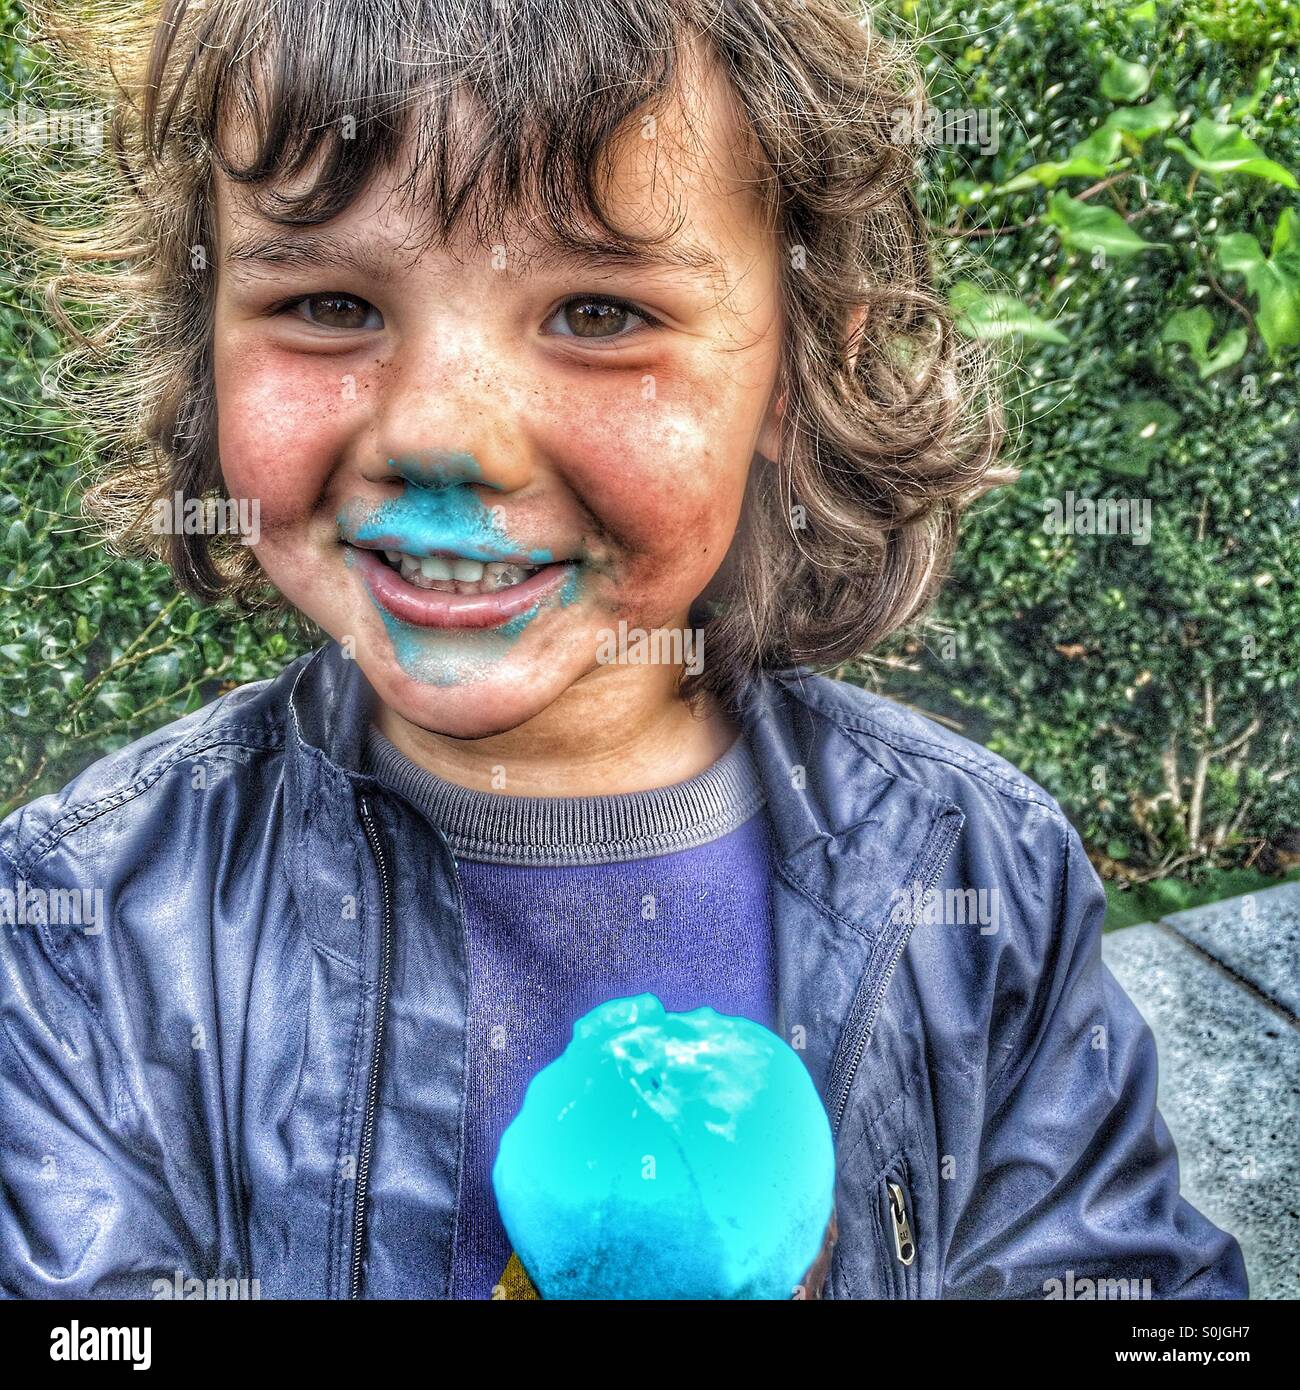 4 year old boy with blue ice cream cone - Stock Image